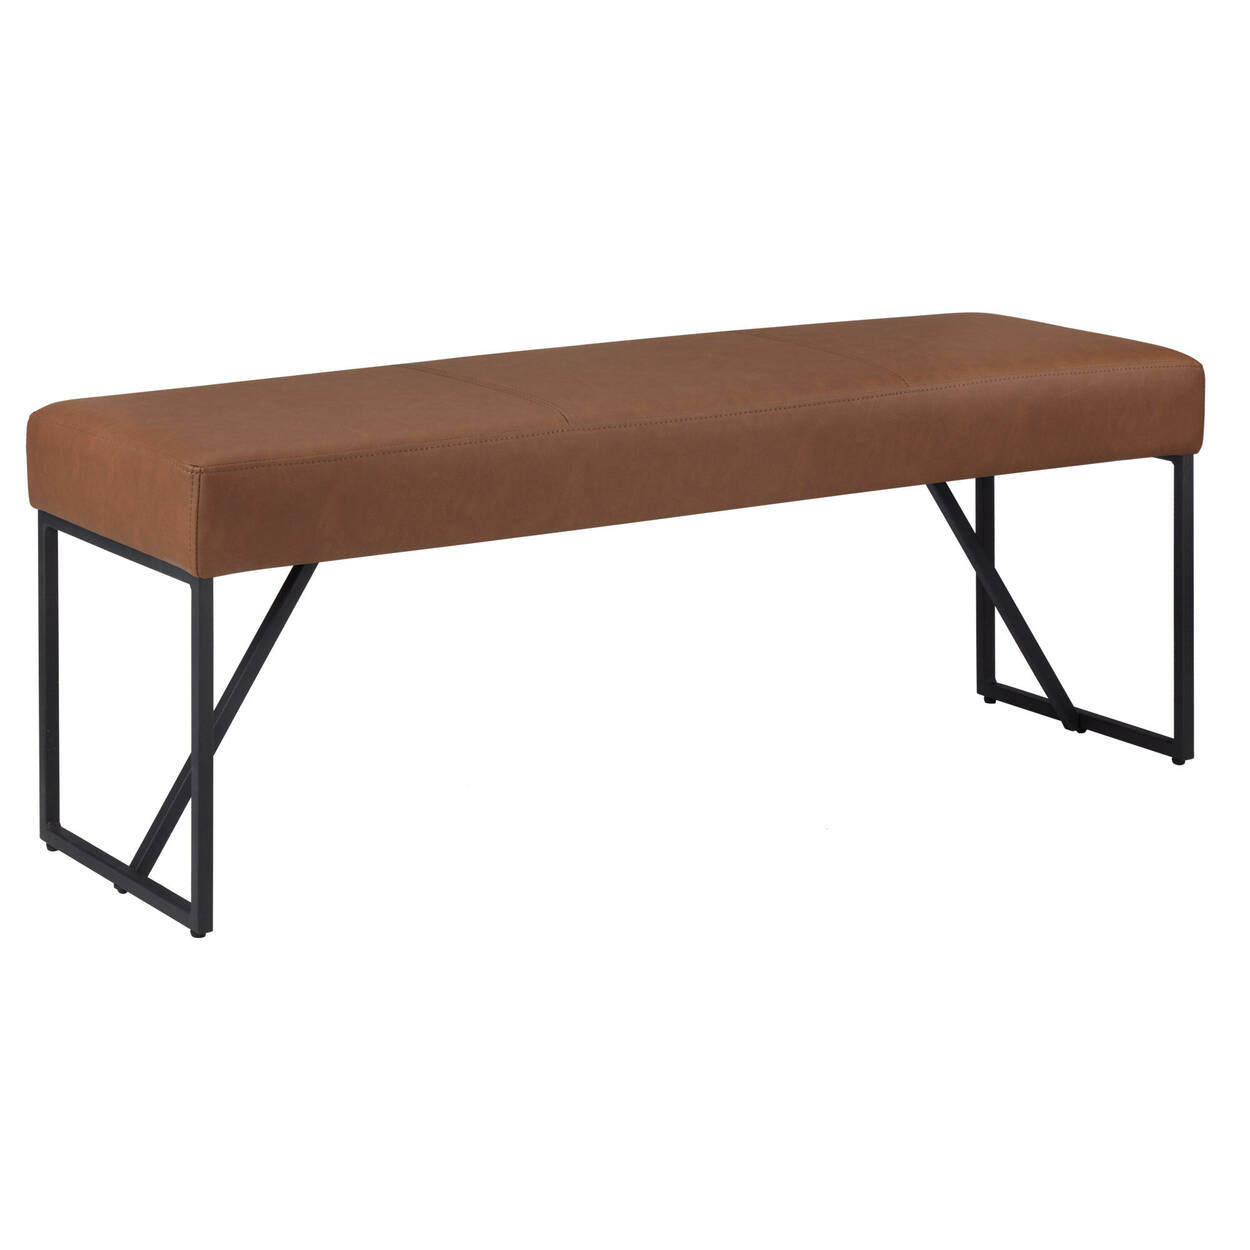 Faux Leather and Metal Bench